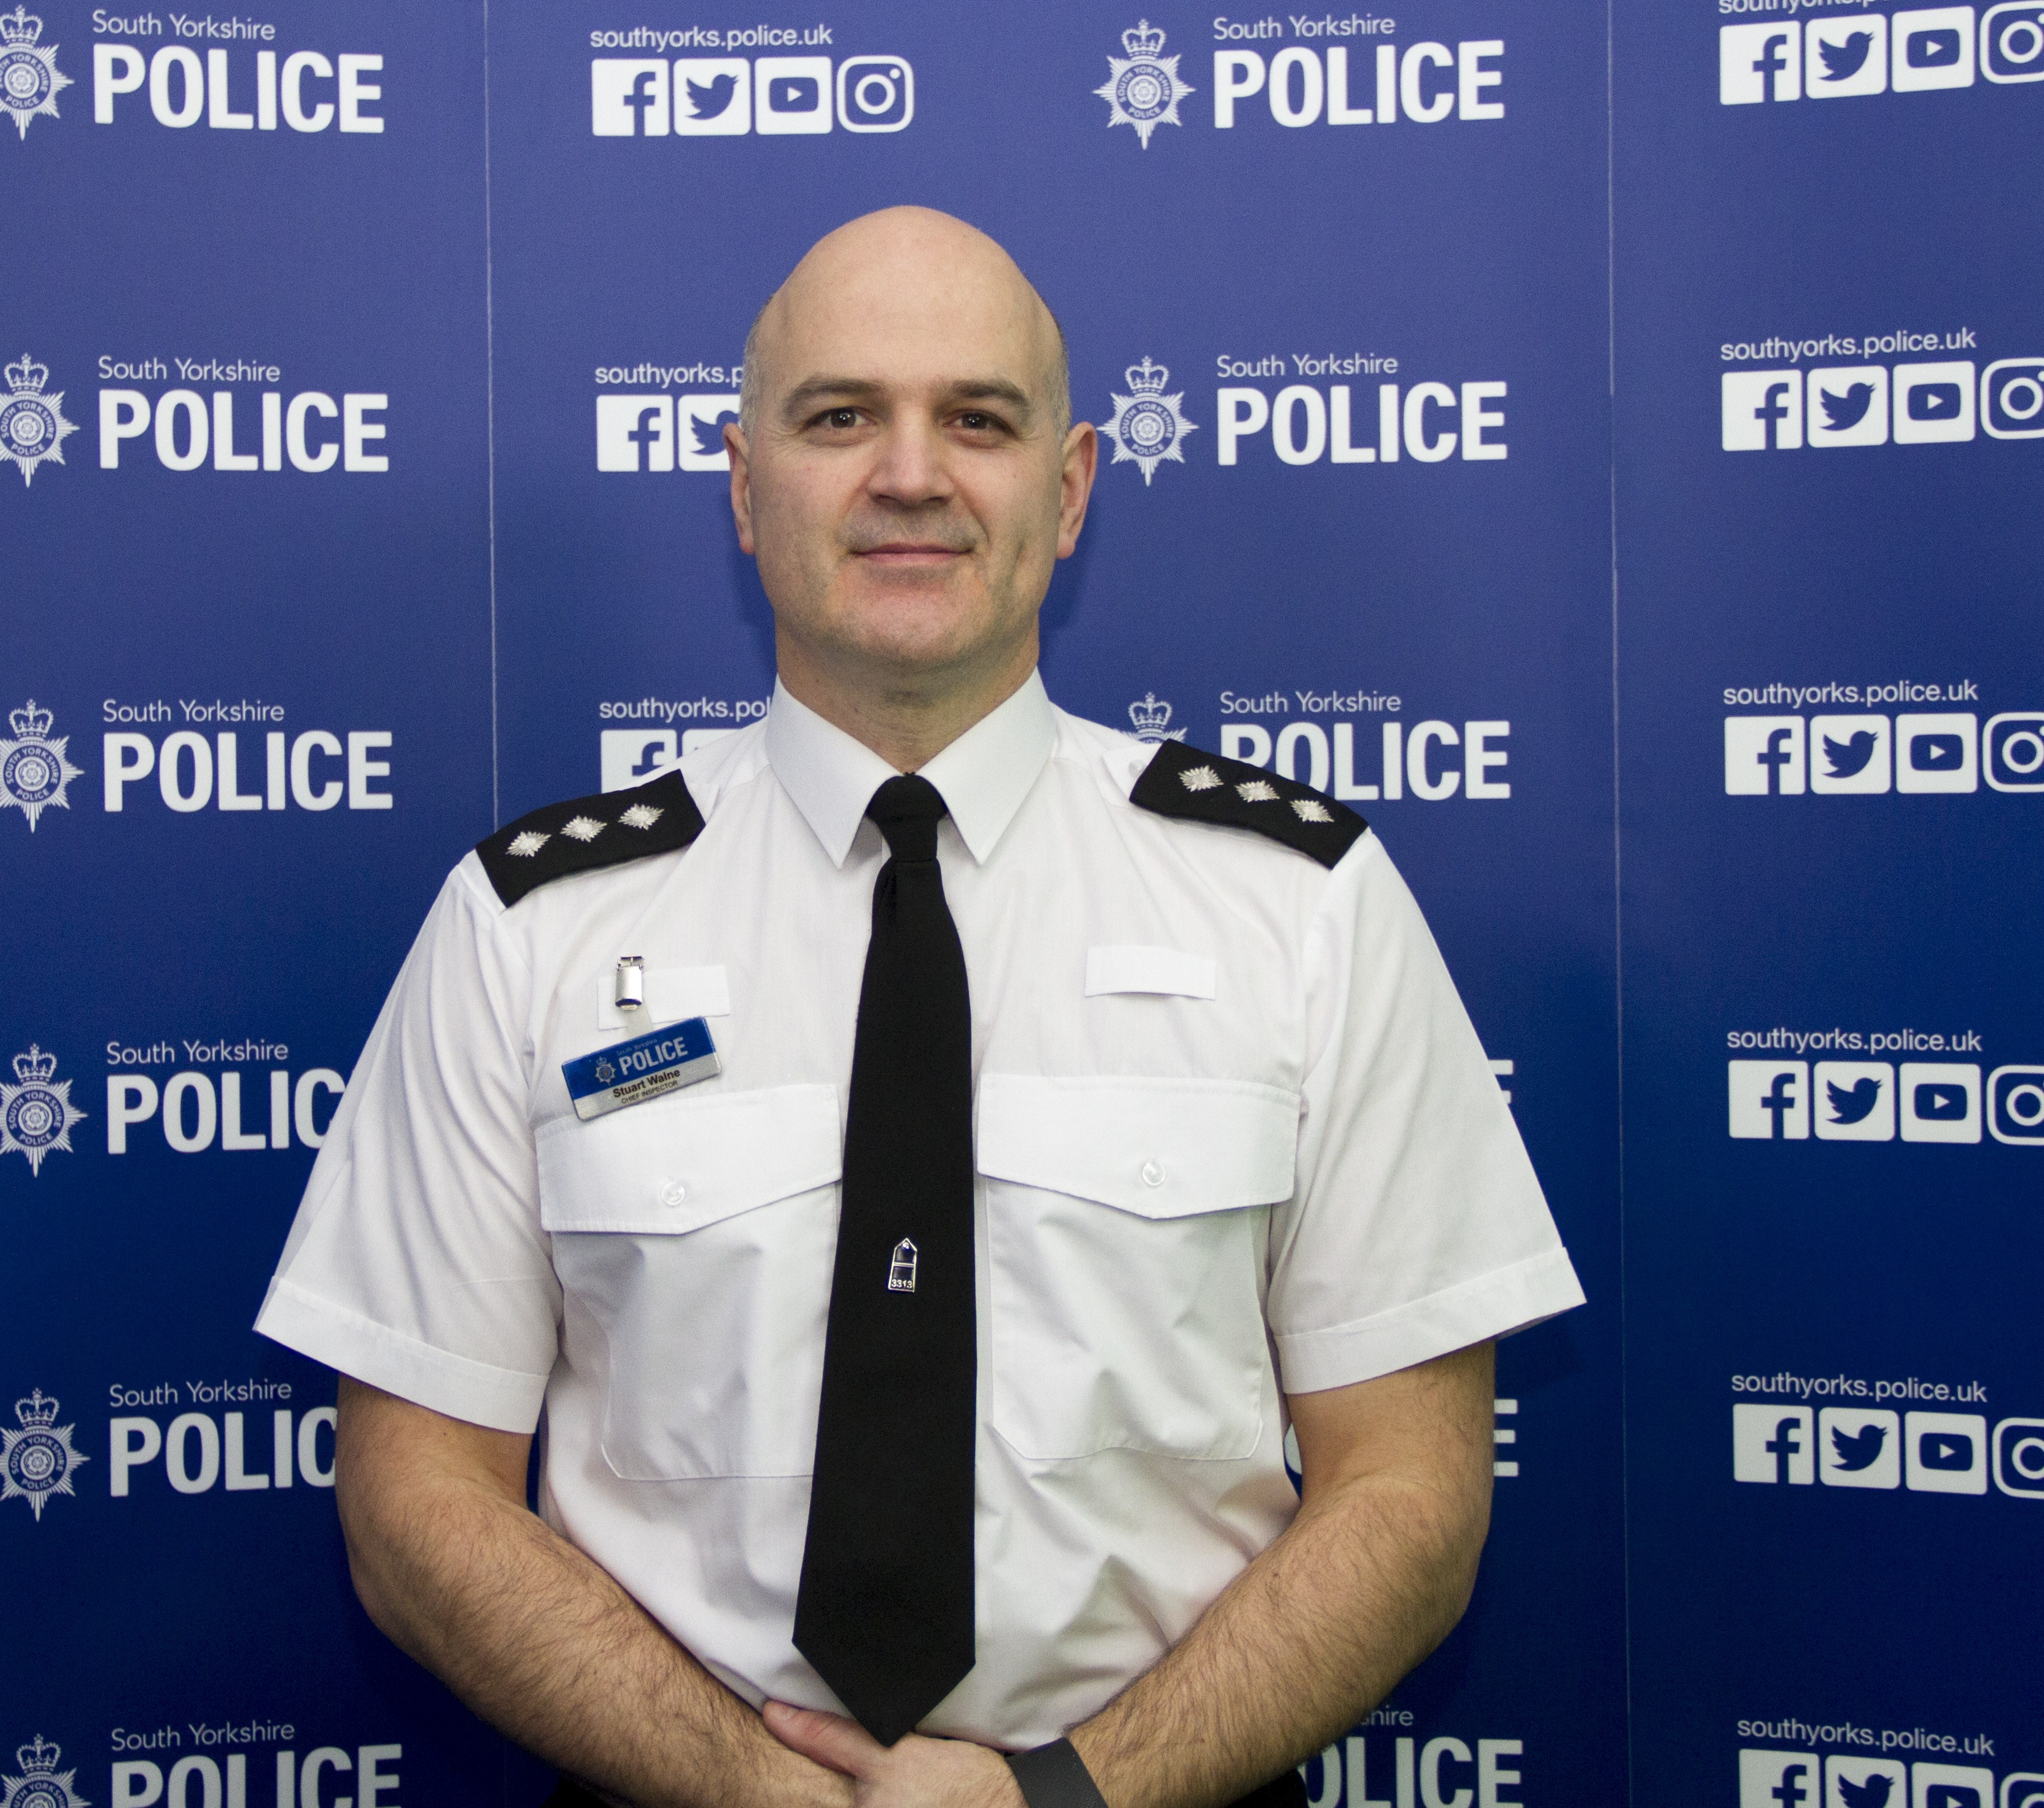 Project Director - Chief Inspector Stuart Walne